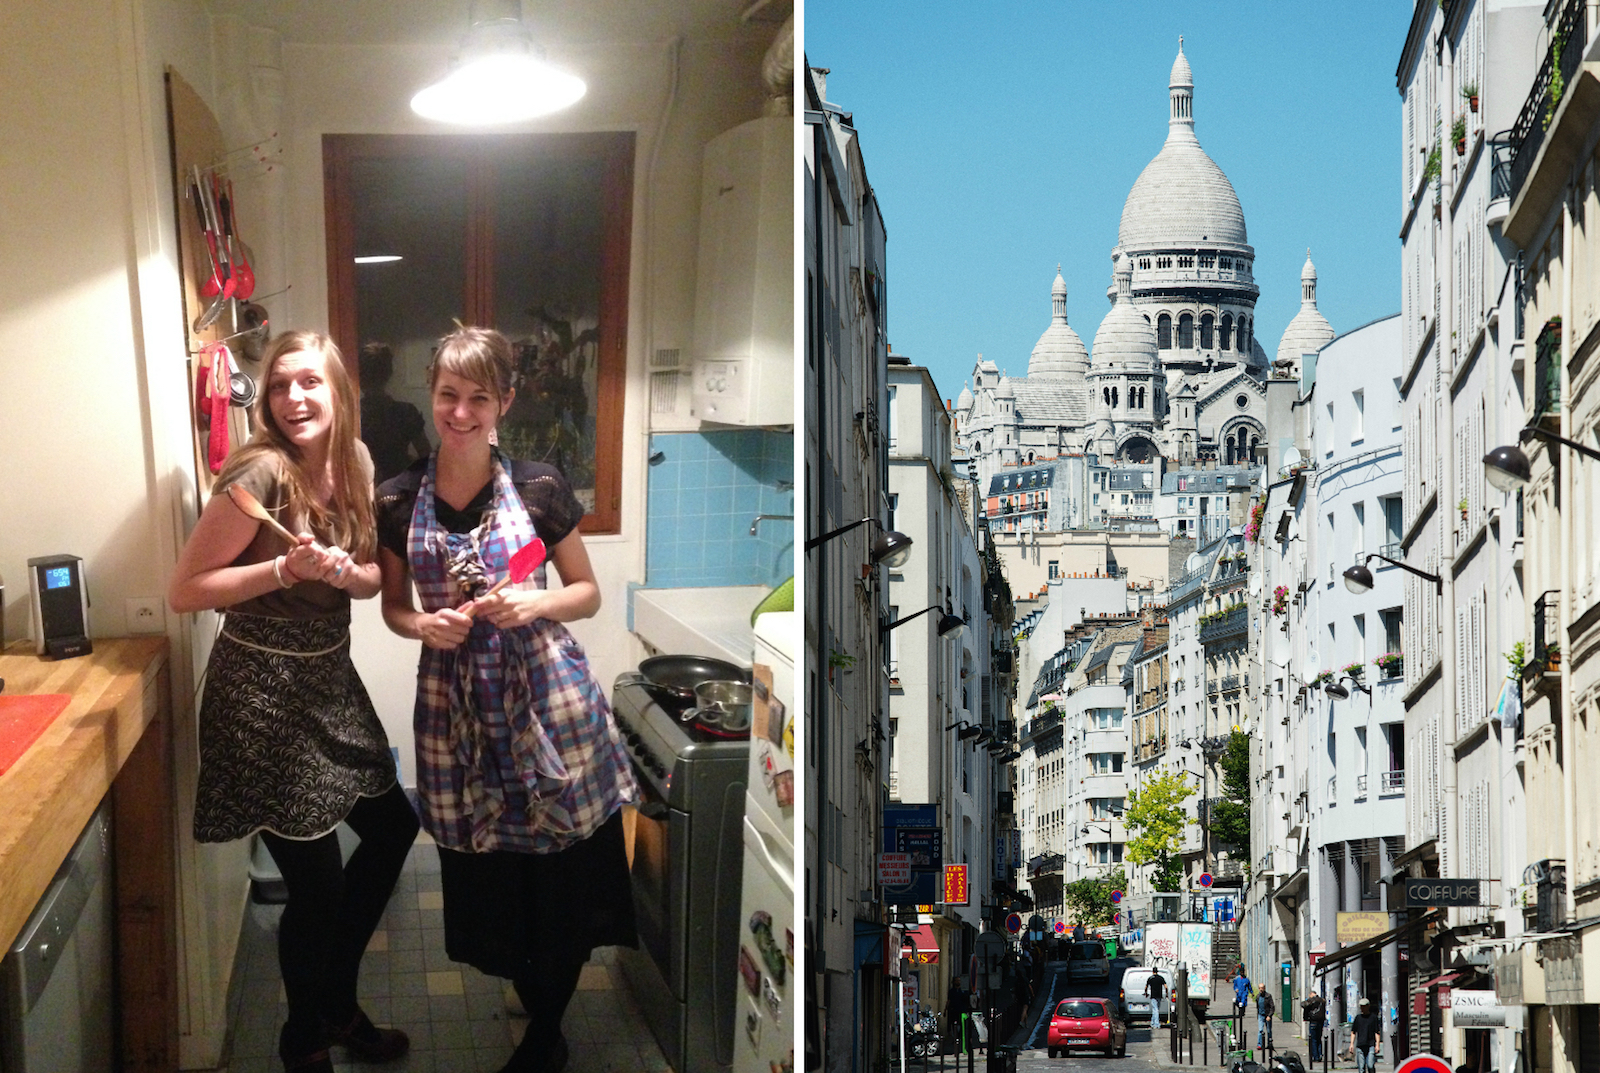 City Life vs Country Life. On moving from Paris to The Loire Valley.